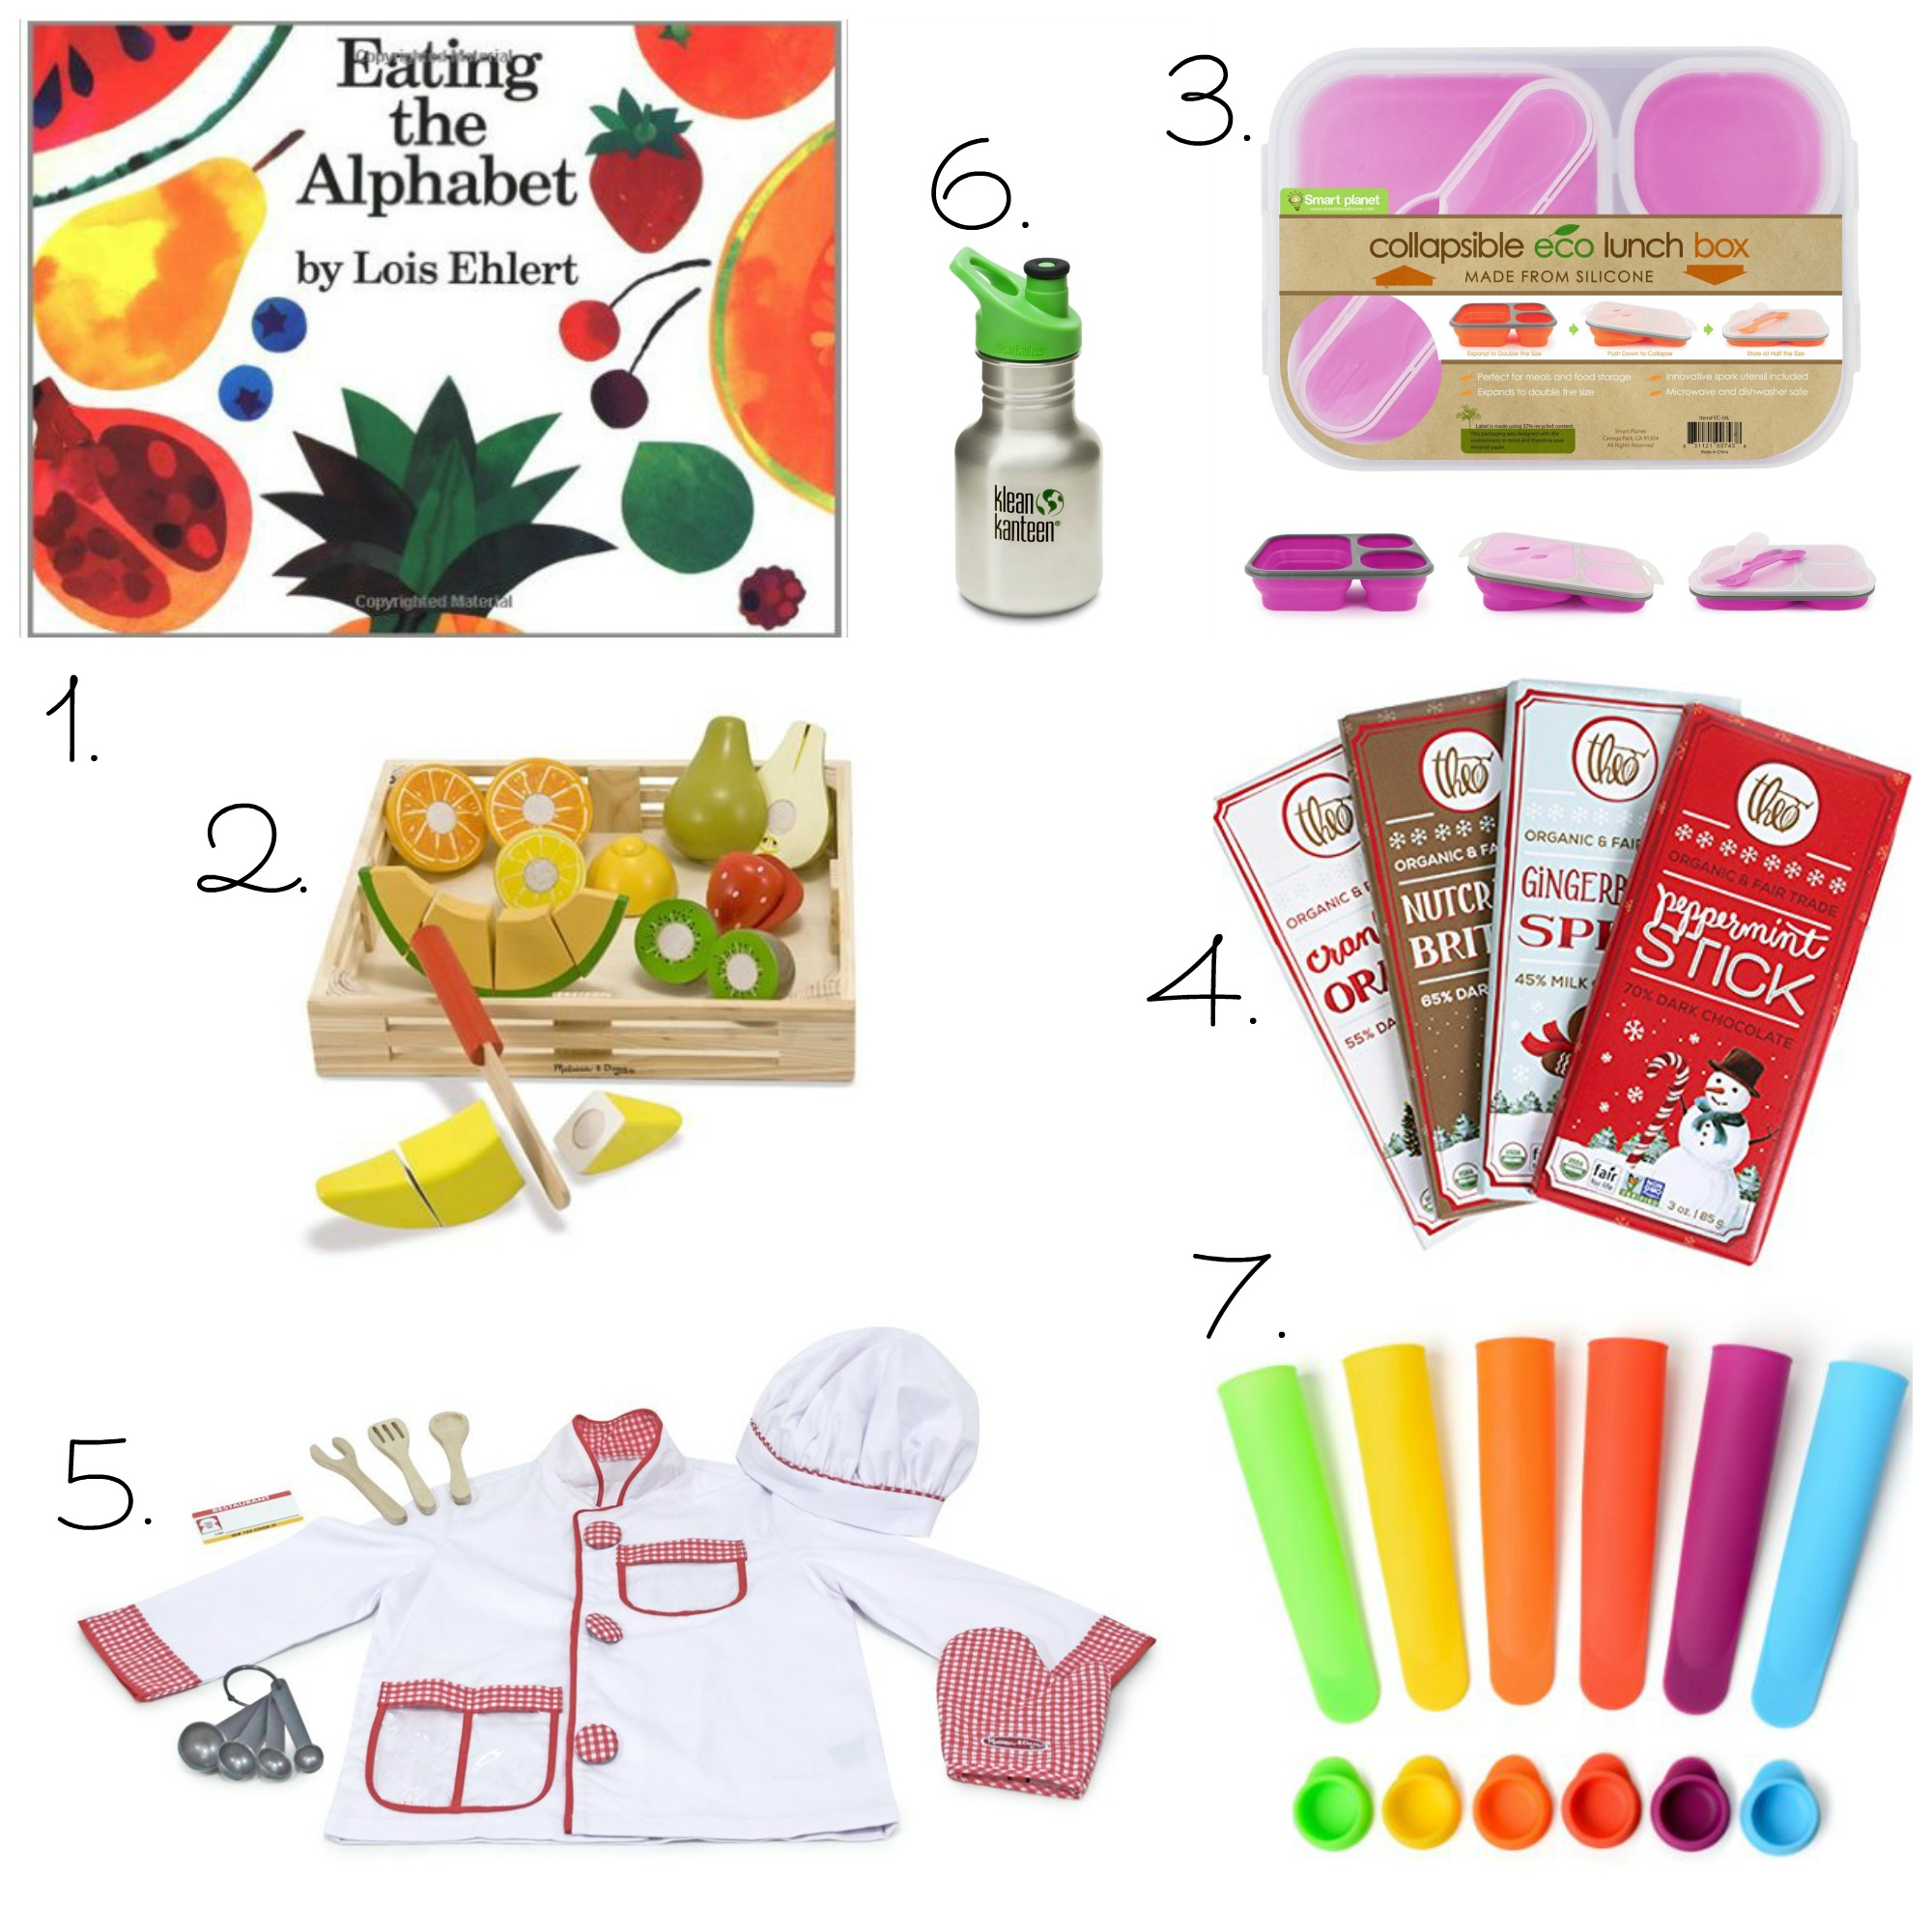 Small Gift Guide Ideas For Her Him And Kids The Organic Dietitian